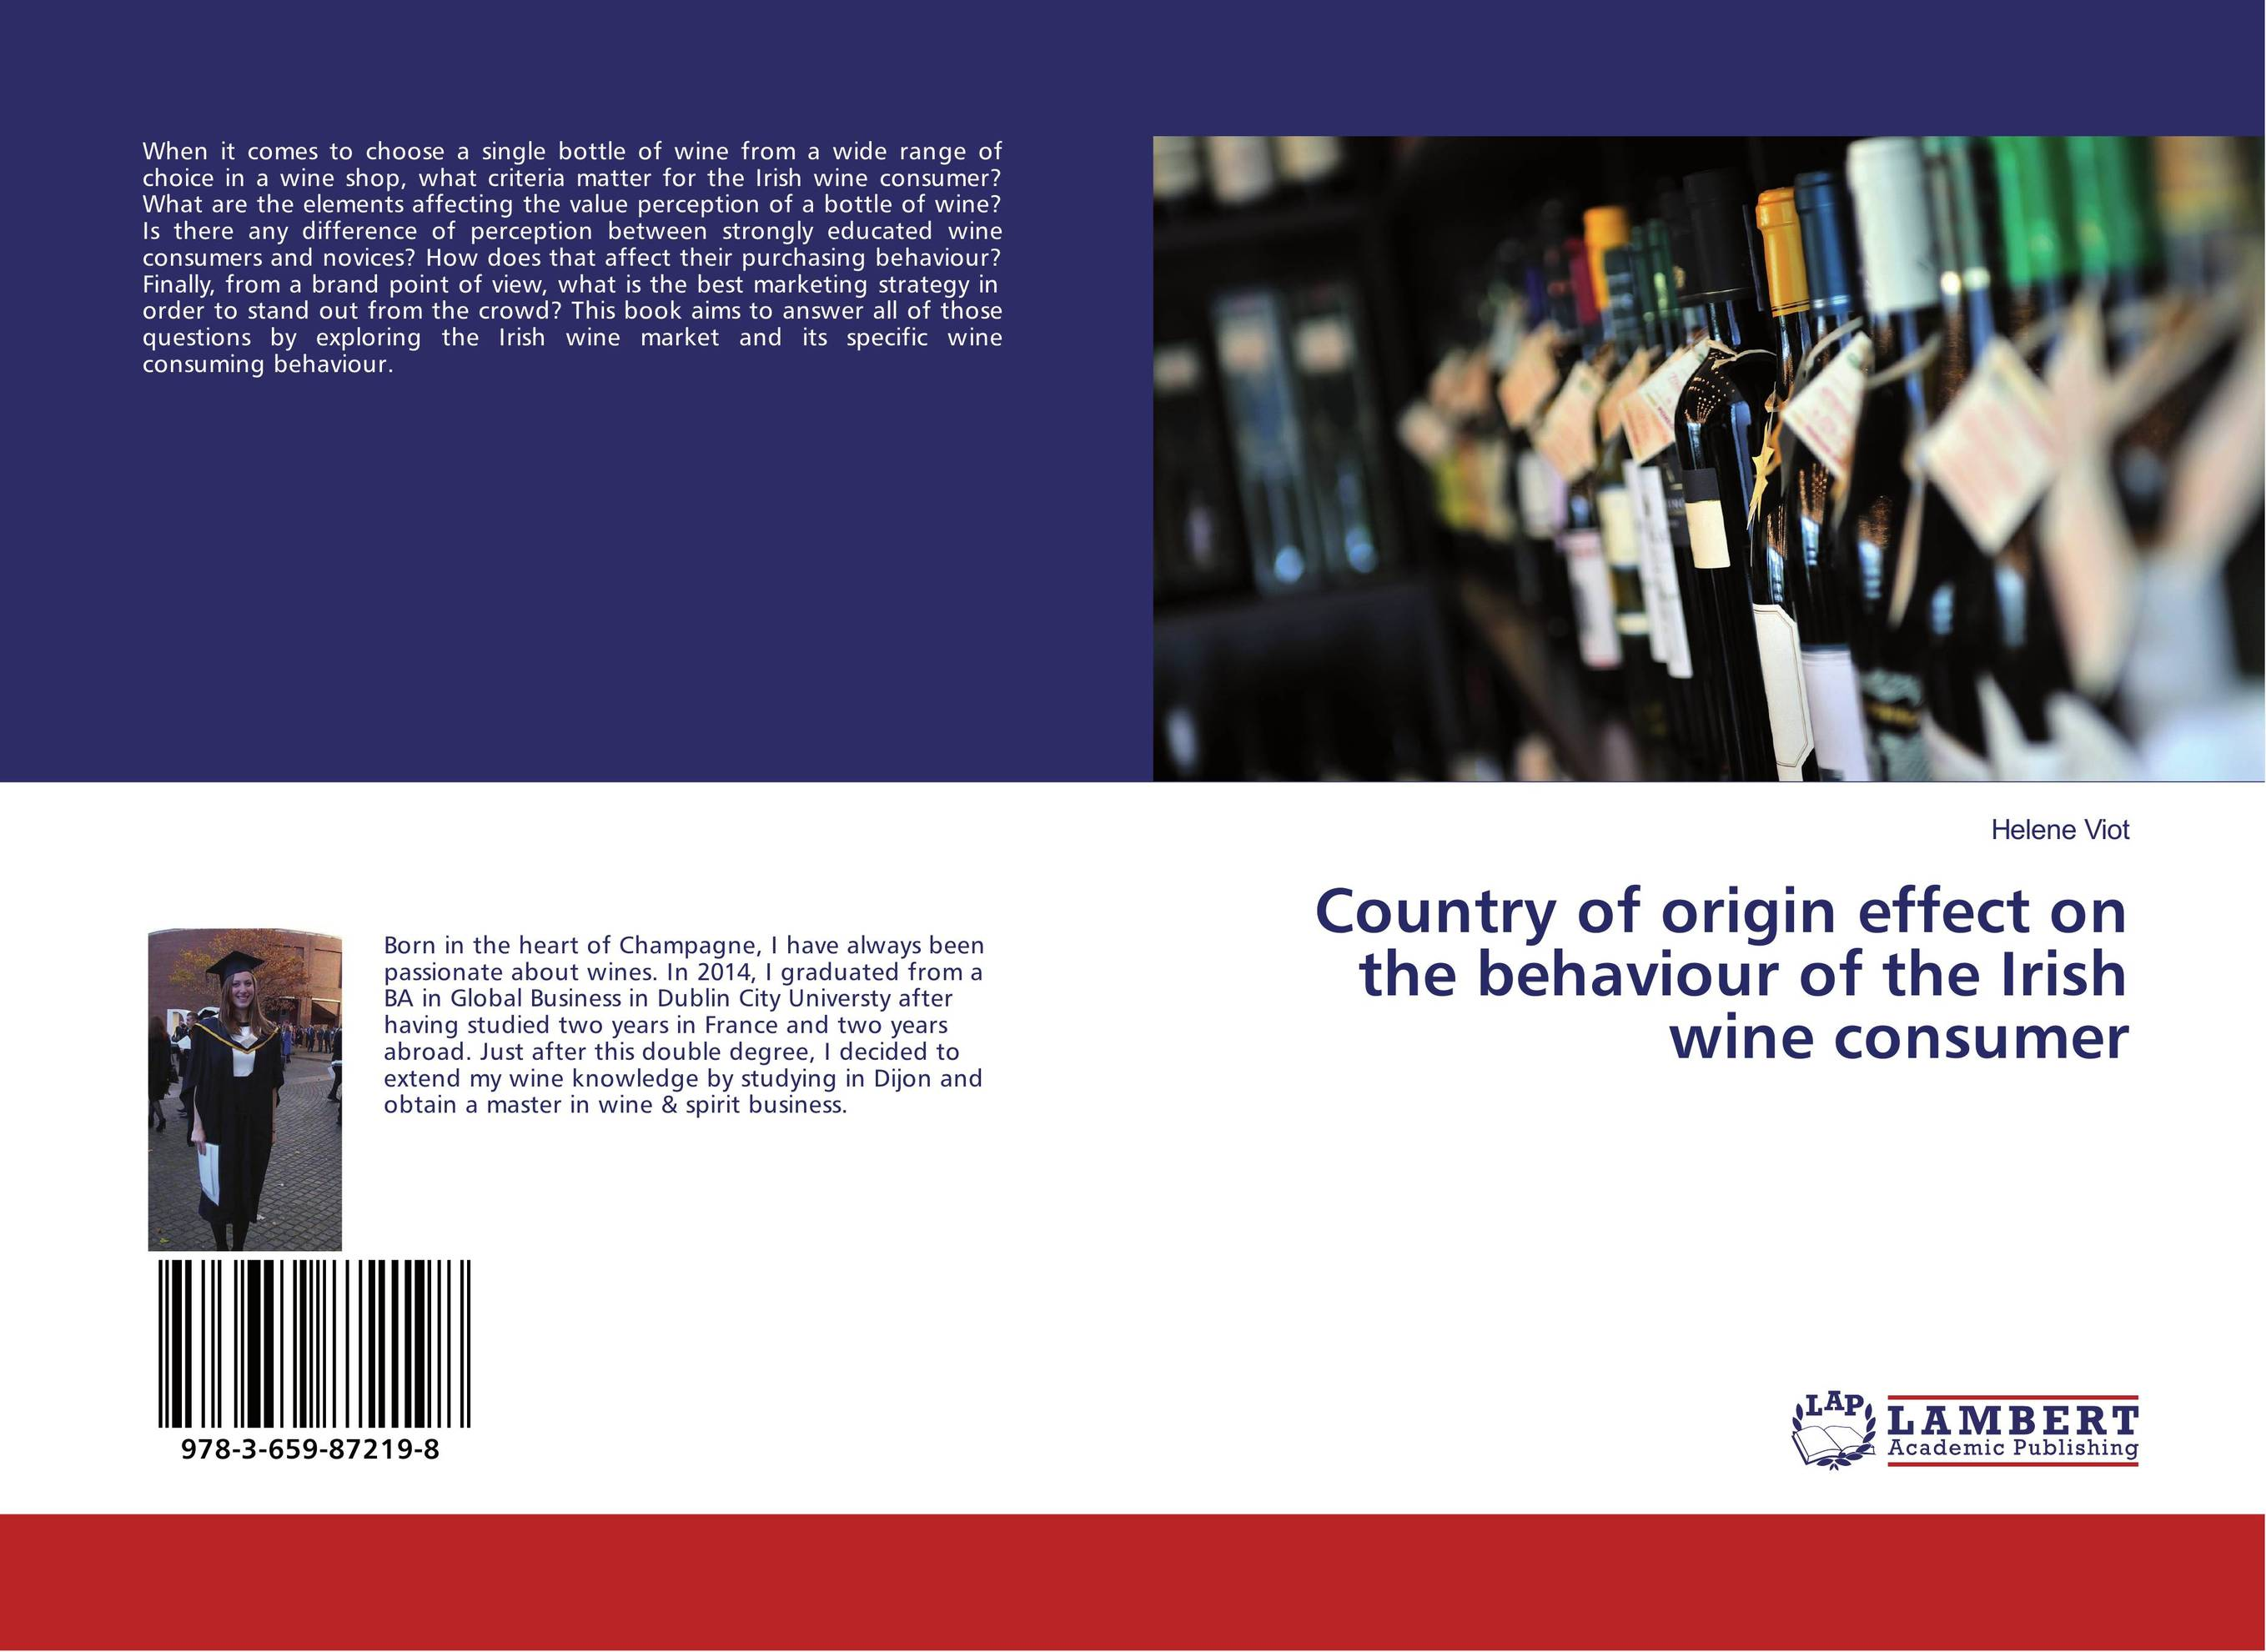 Country of origin effect on the behaviour of the Irish wine consumer the custom of the country